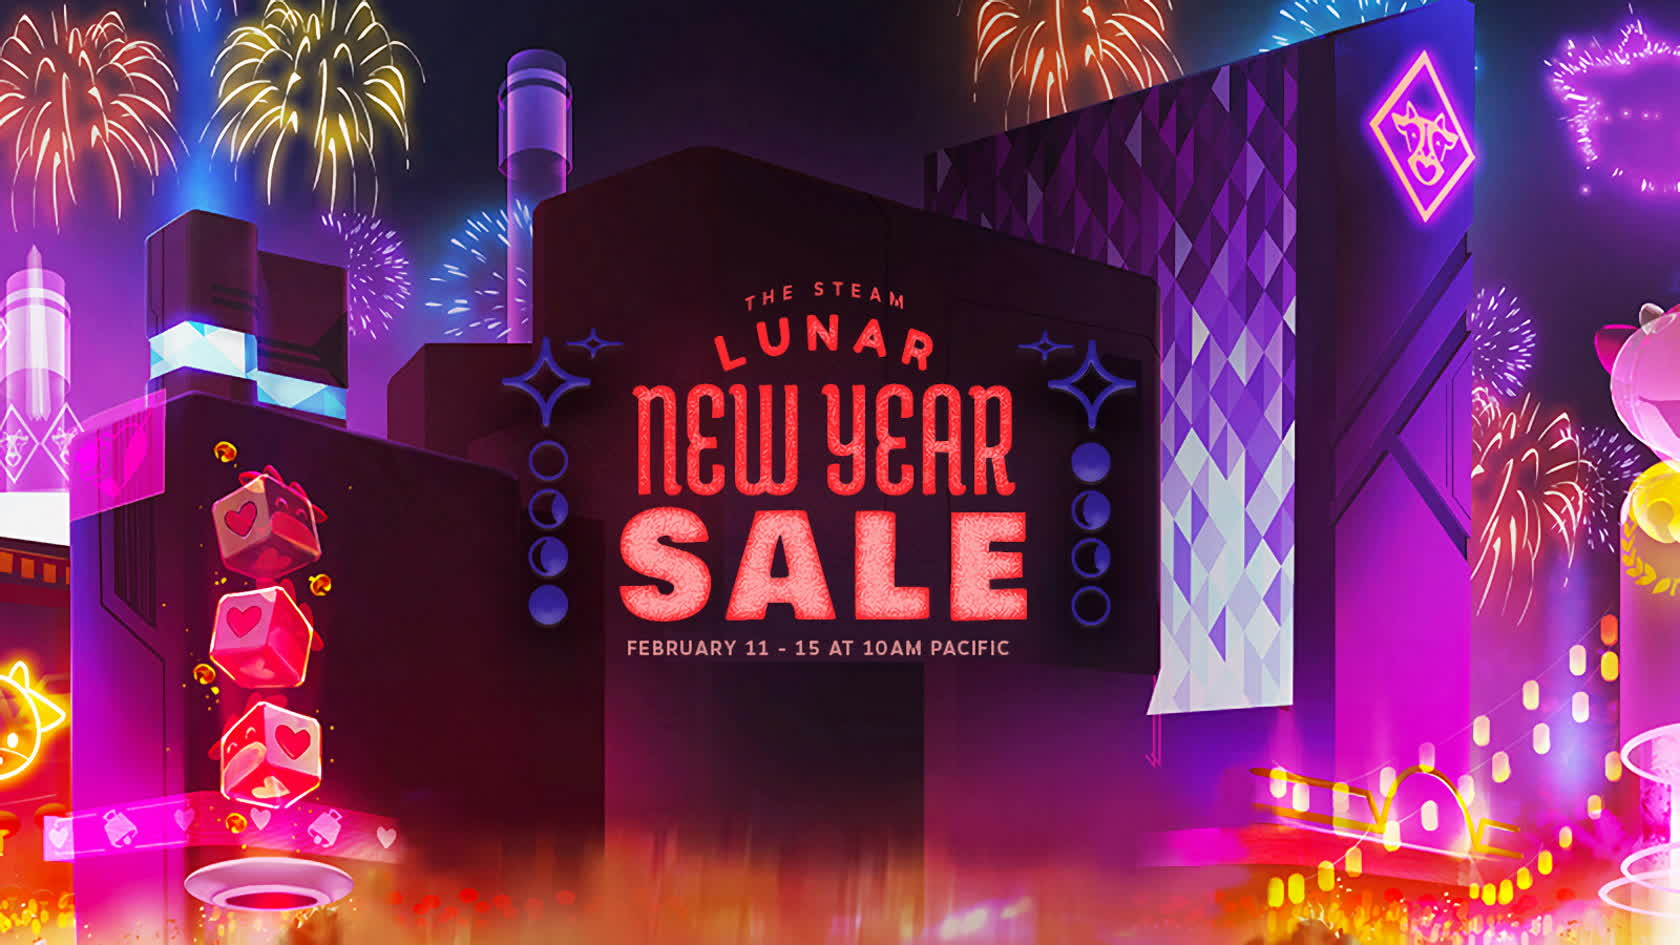 Steam's latest Lunar New Year Sale arrives with thousands of discounted games